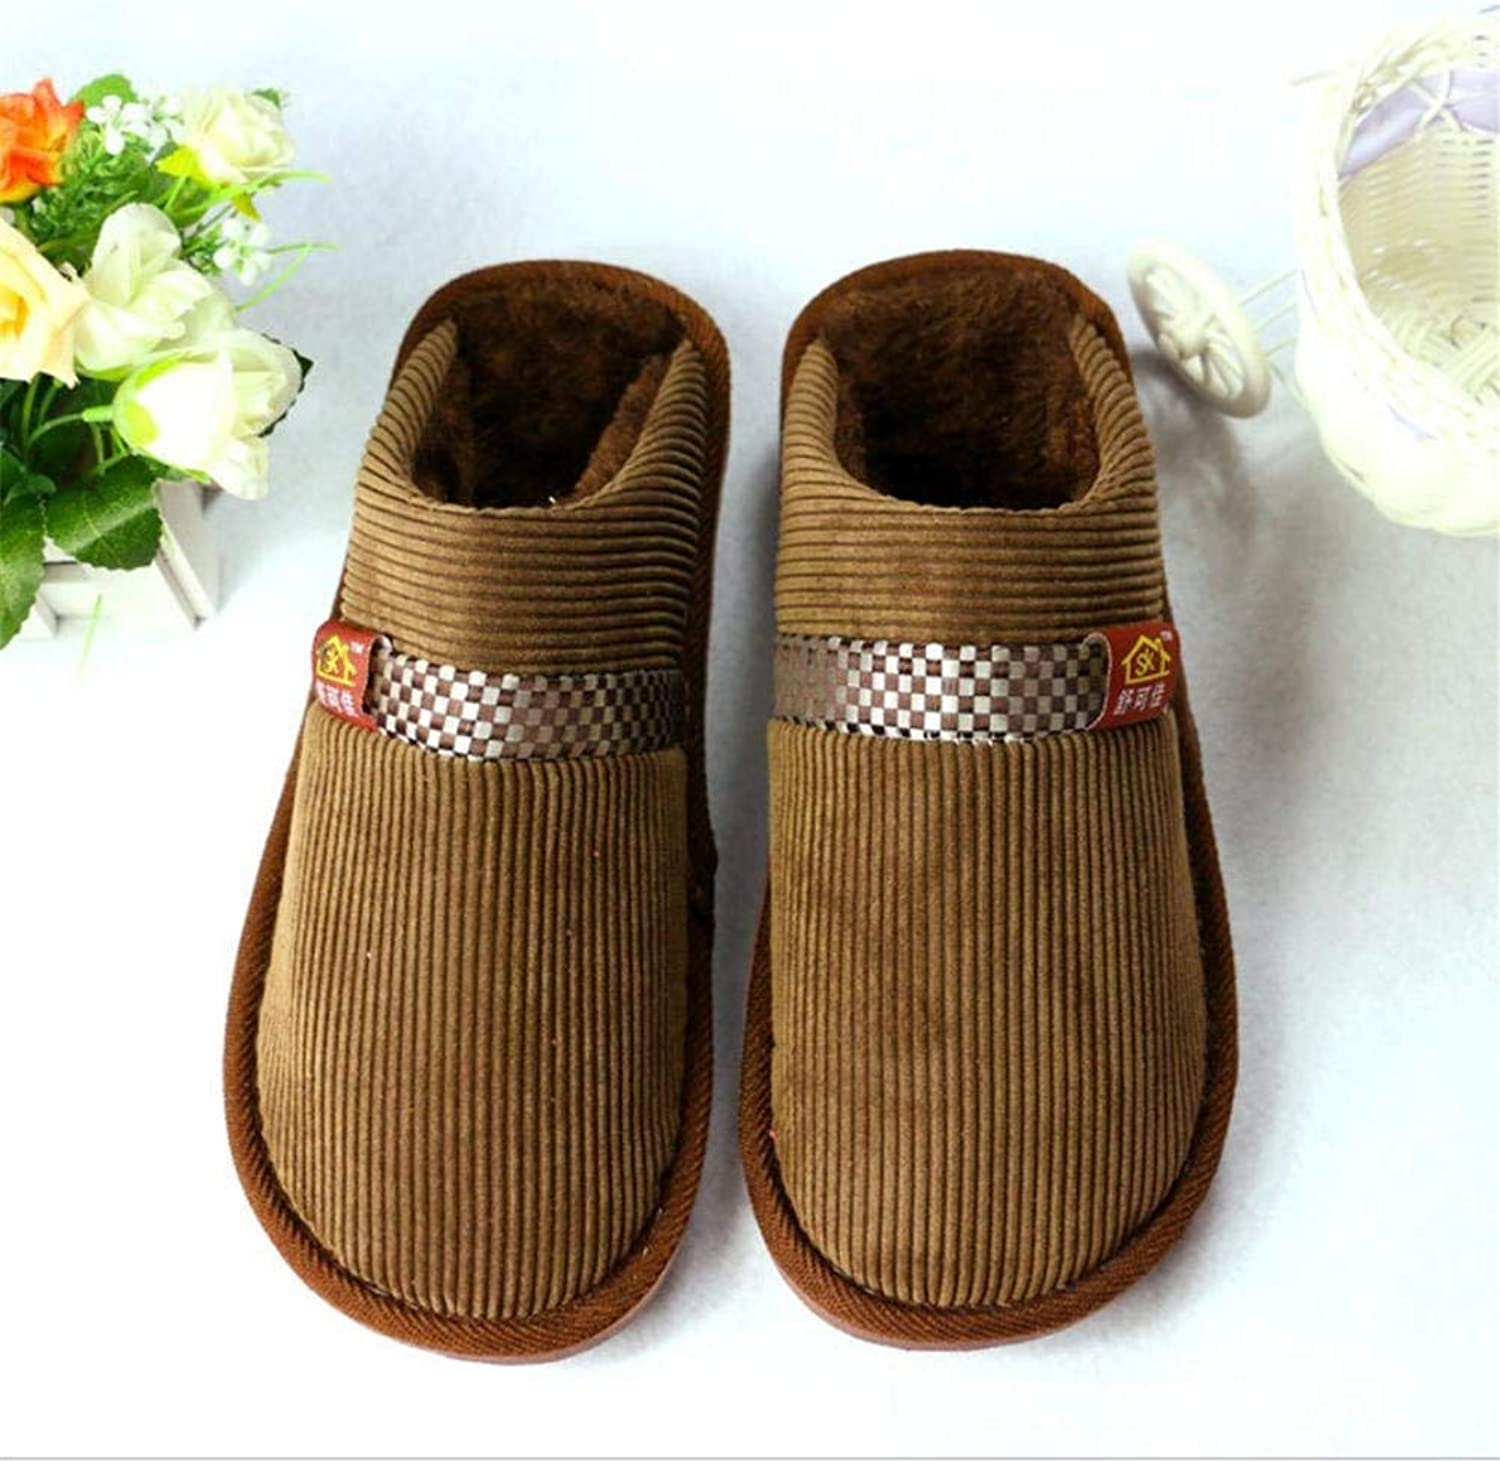 JaHGDU Men's Cotton Slippers Home Warm in Autumn and Winter Cotton Slippers bluee Brown Casual Bedroom Slippers